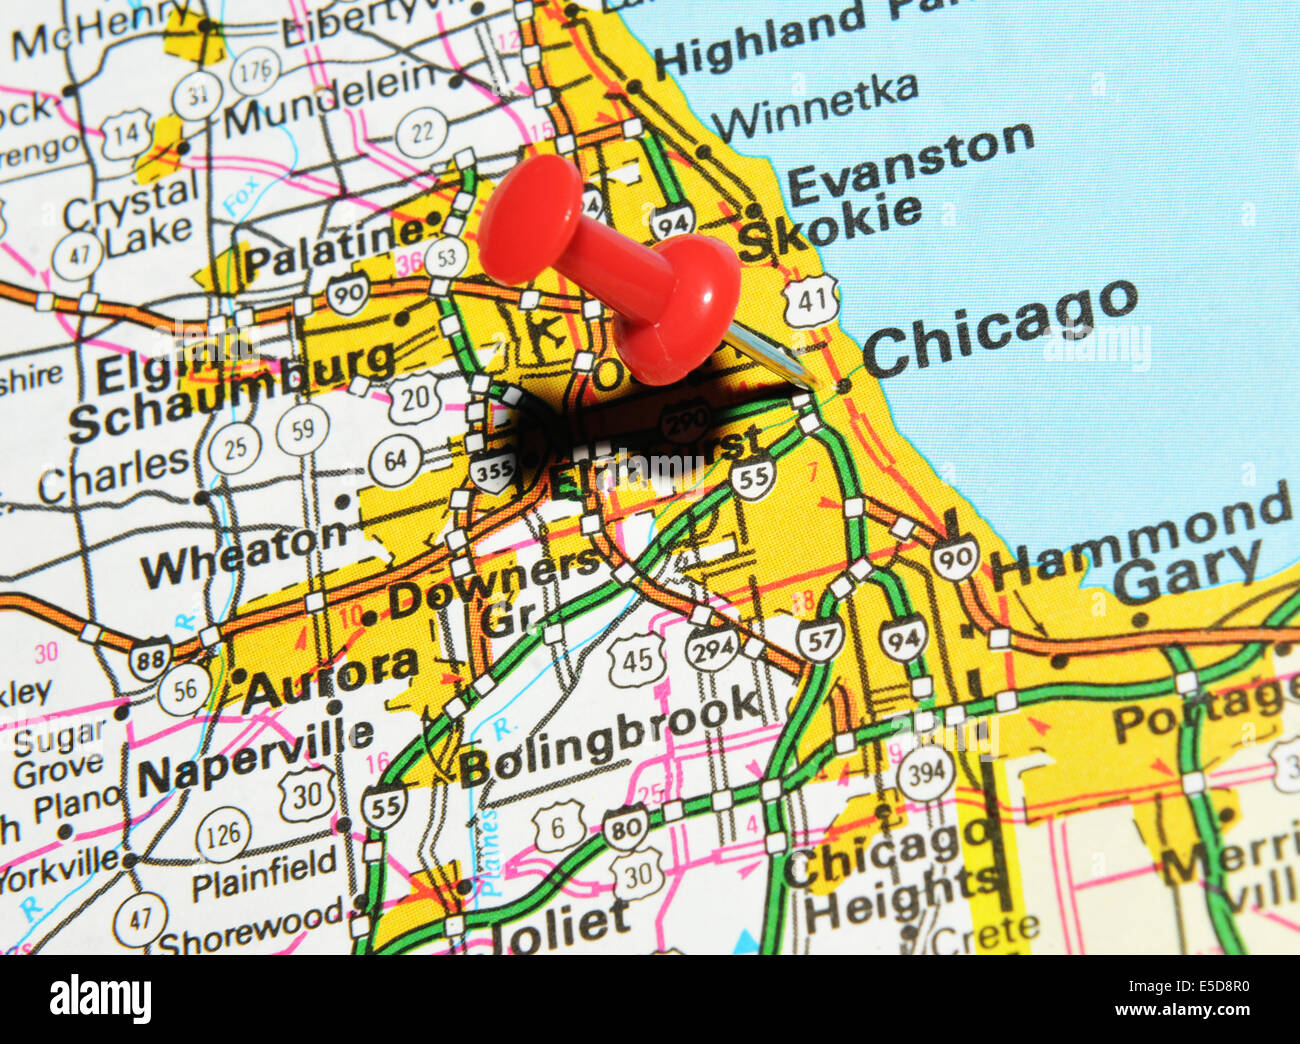 Chicago On Us Map Stock Photo 72207044 Alamy